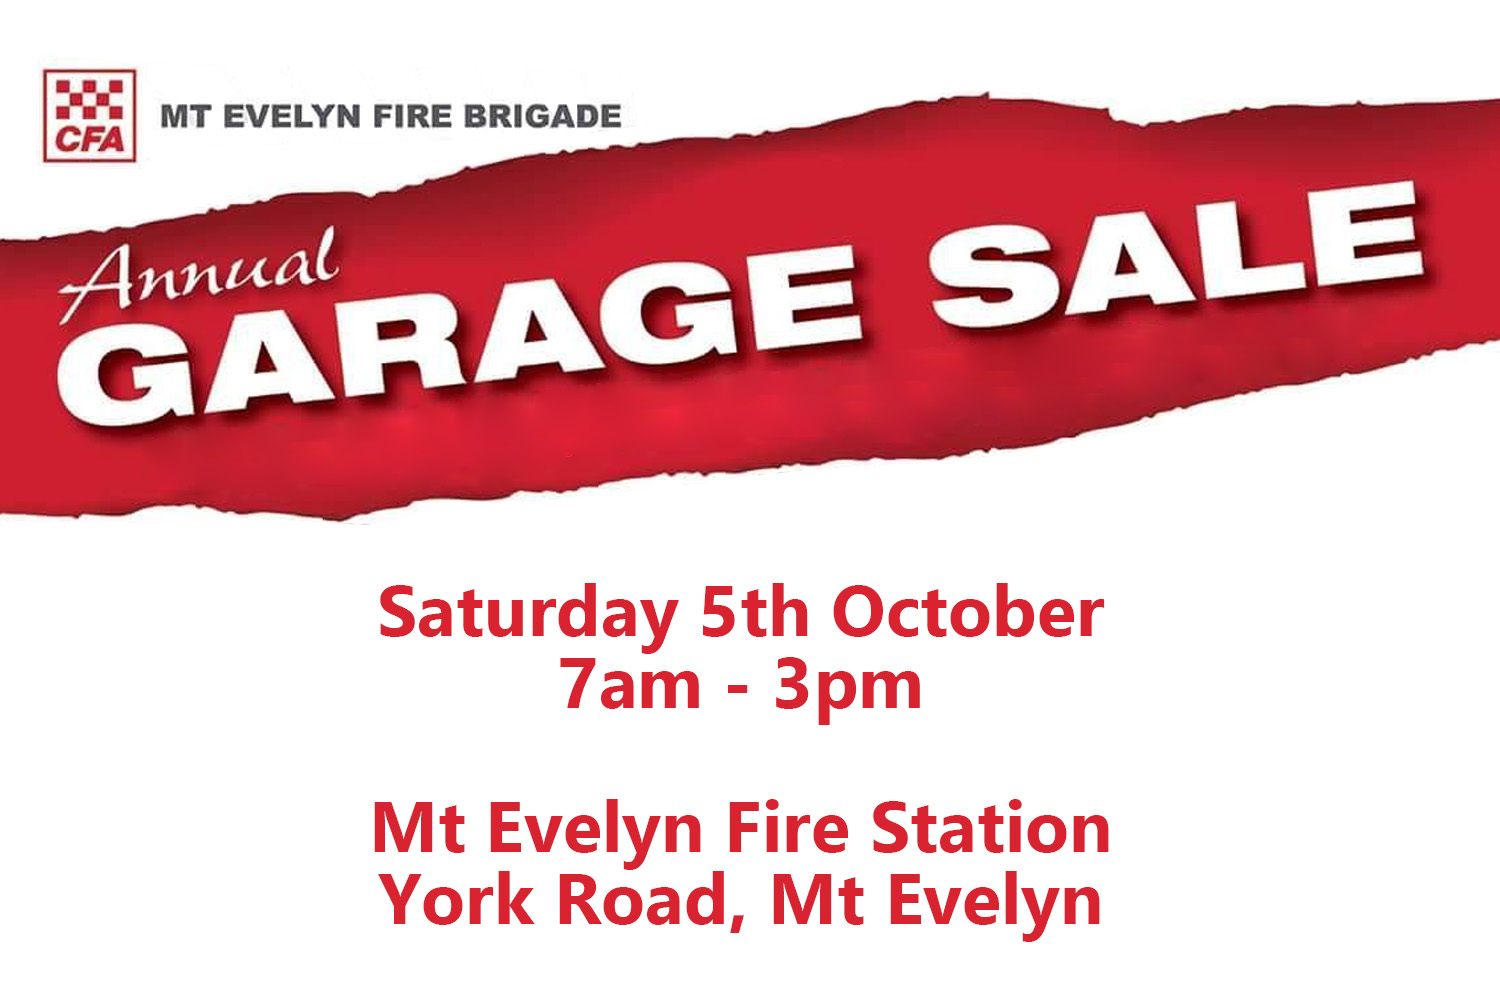 Mt Evelyn CFA Garage Sale